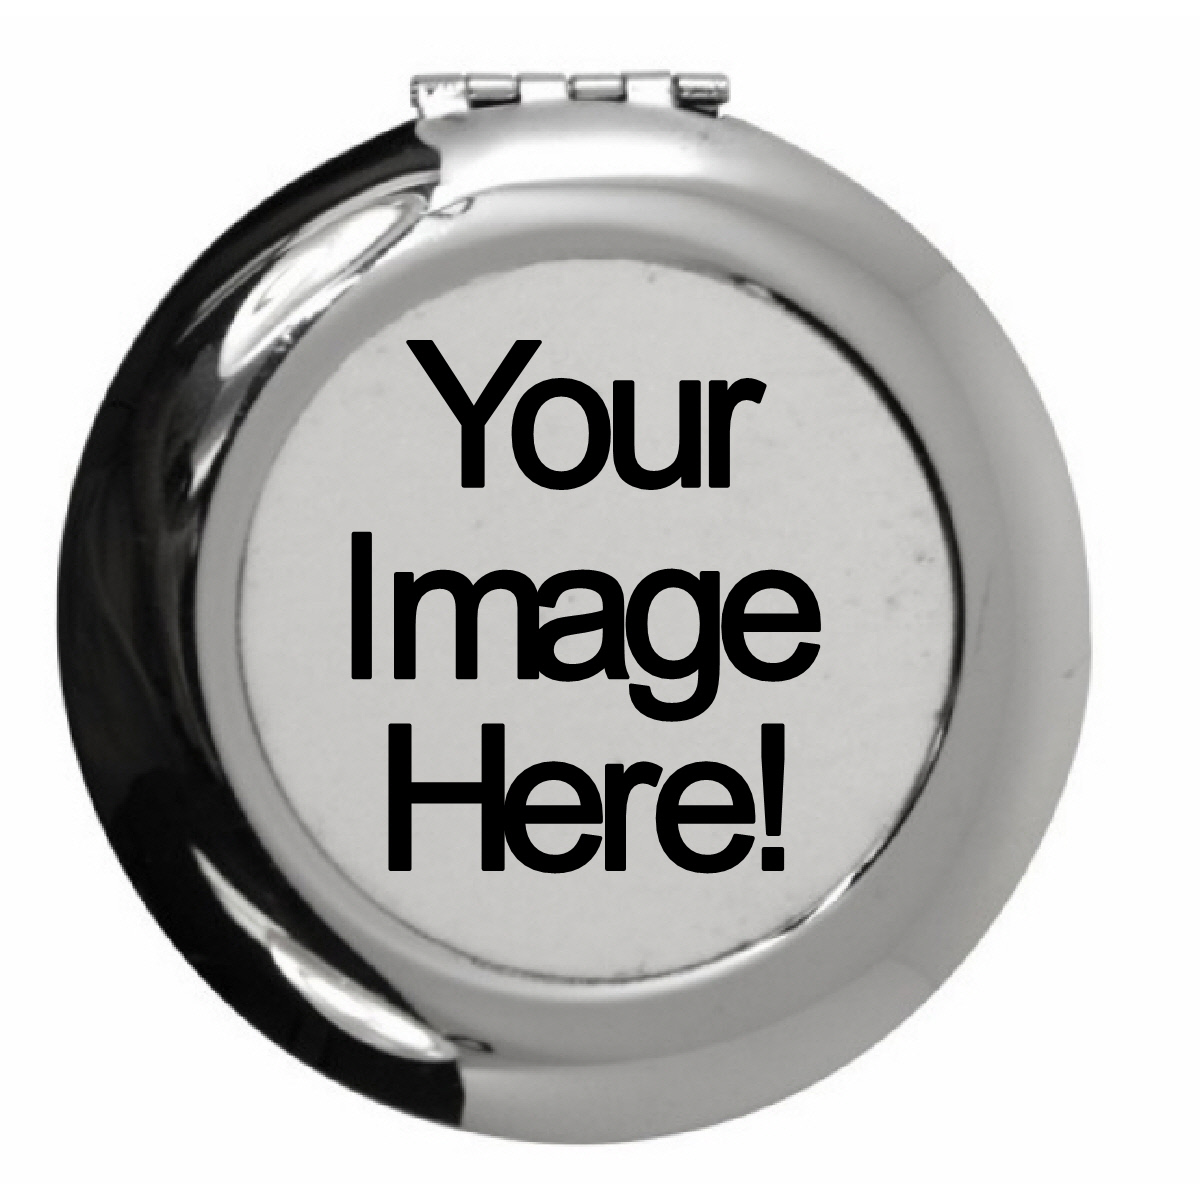 A Bespoke Customized Personalized Compact Mirror Pocket Mirror Purse Mirror Keepsake Unique Gift